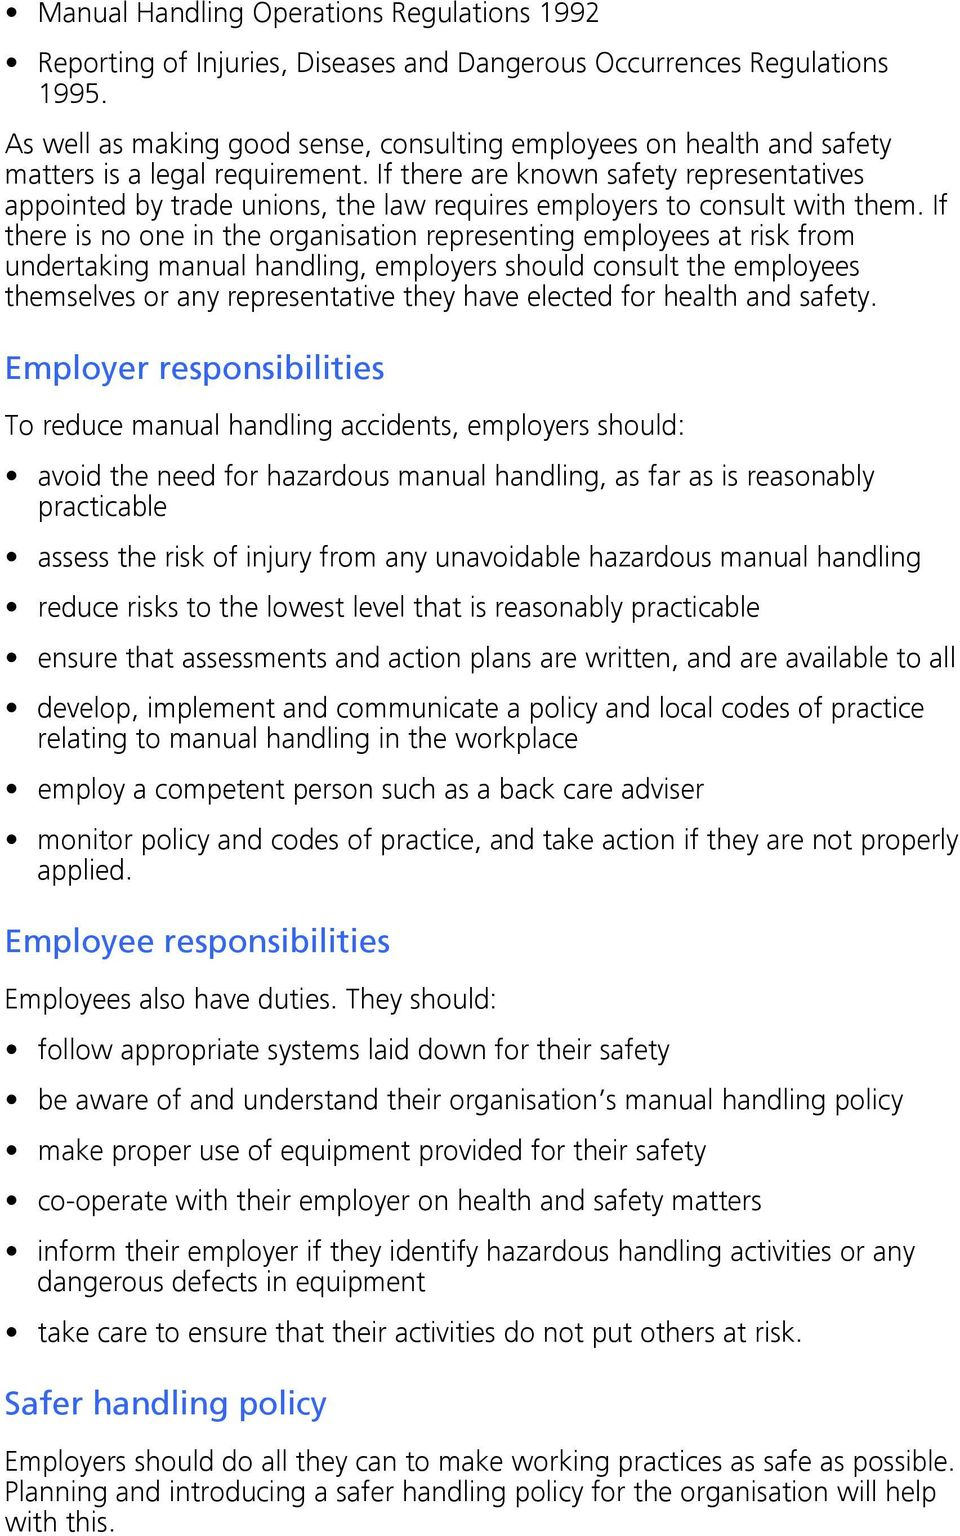 If there are known safety representatives appointed by trade unions, the law requires employers to consult with them.